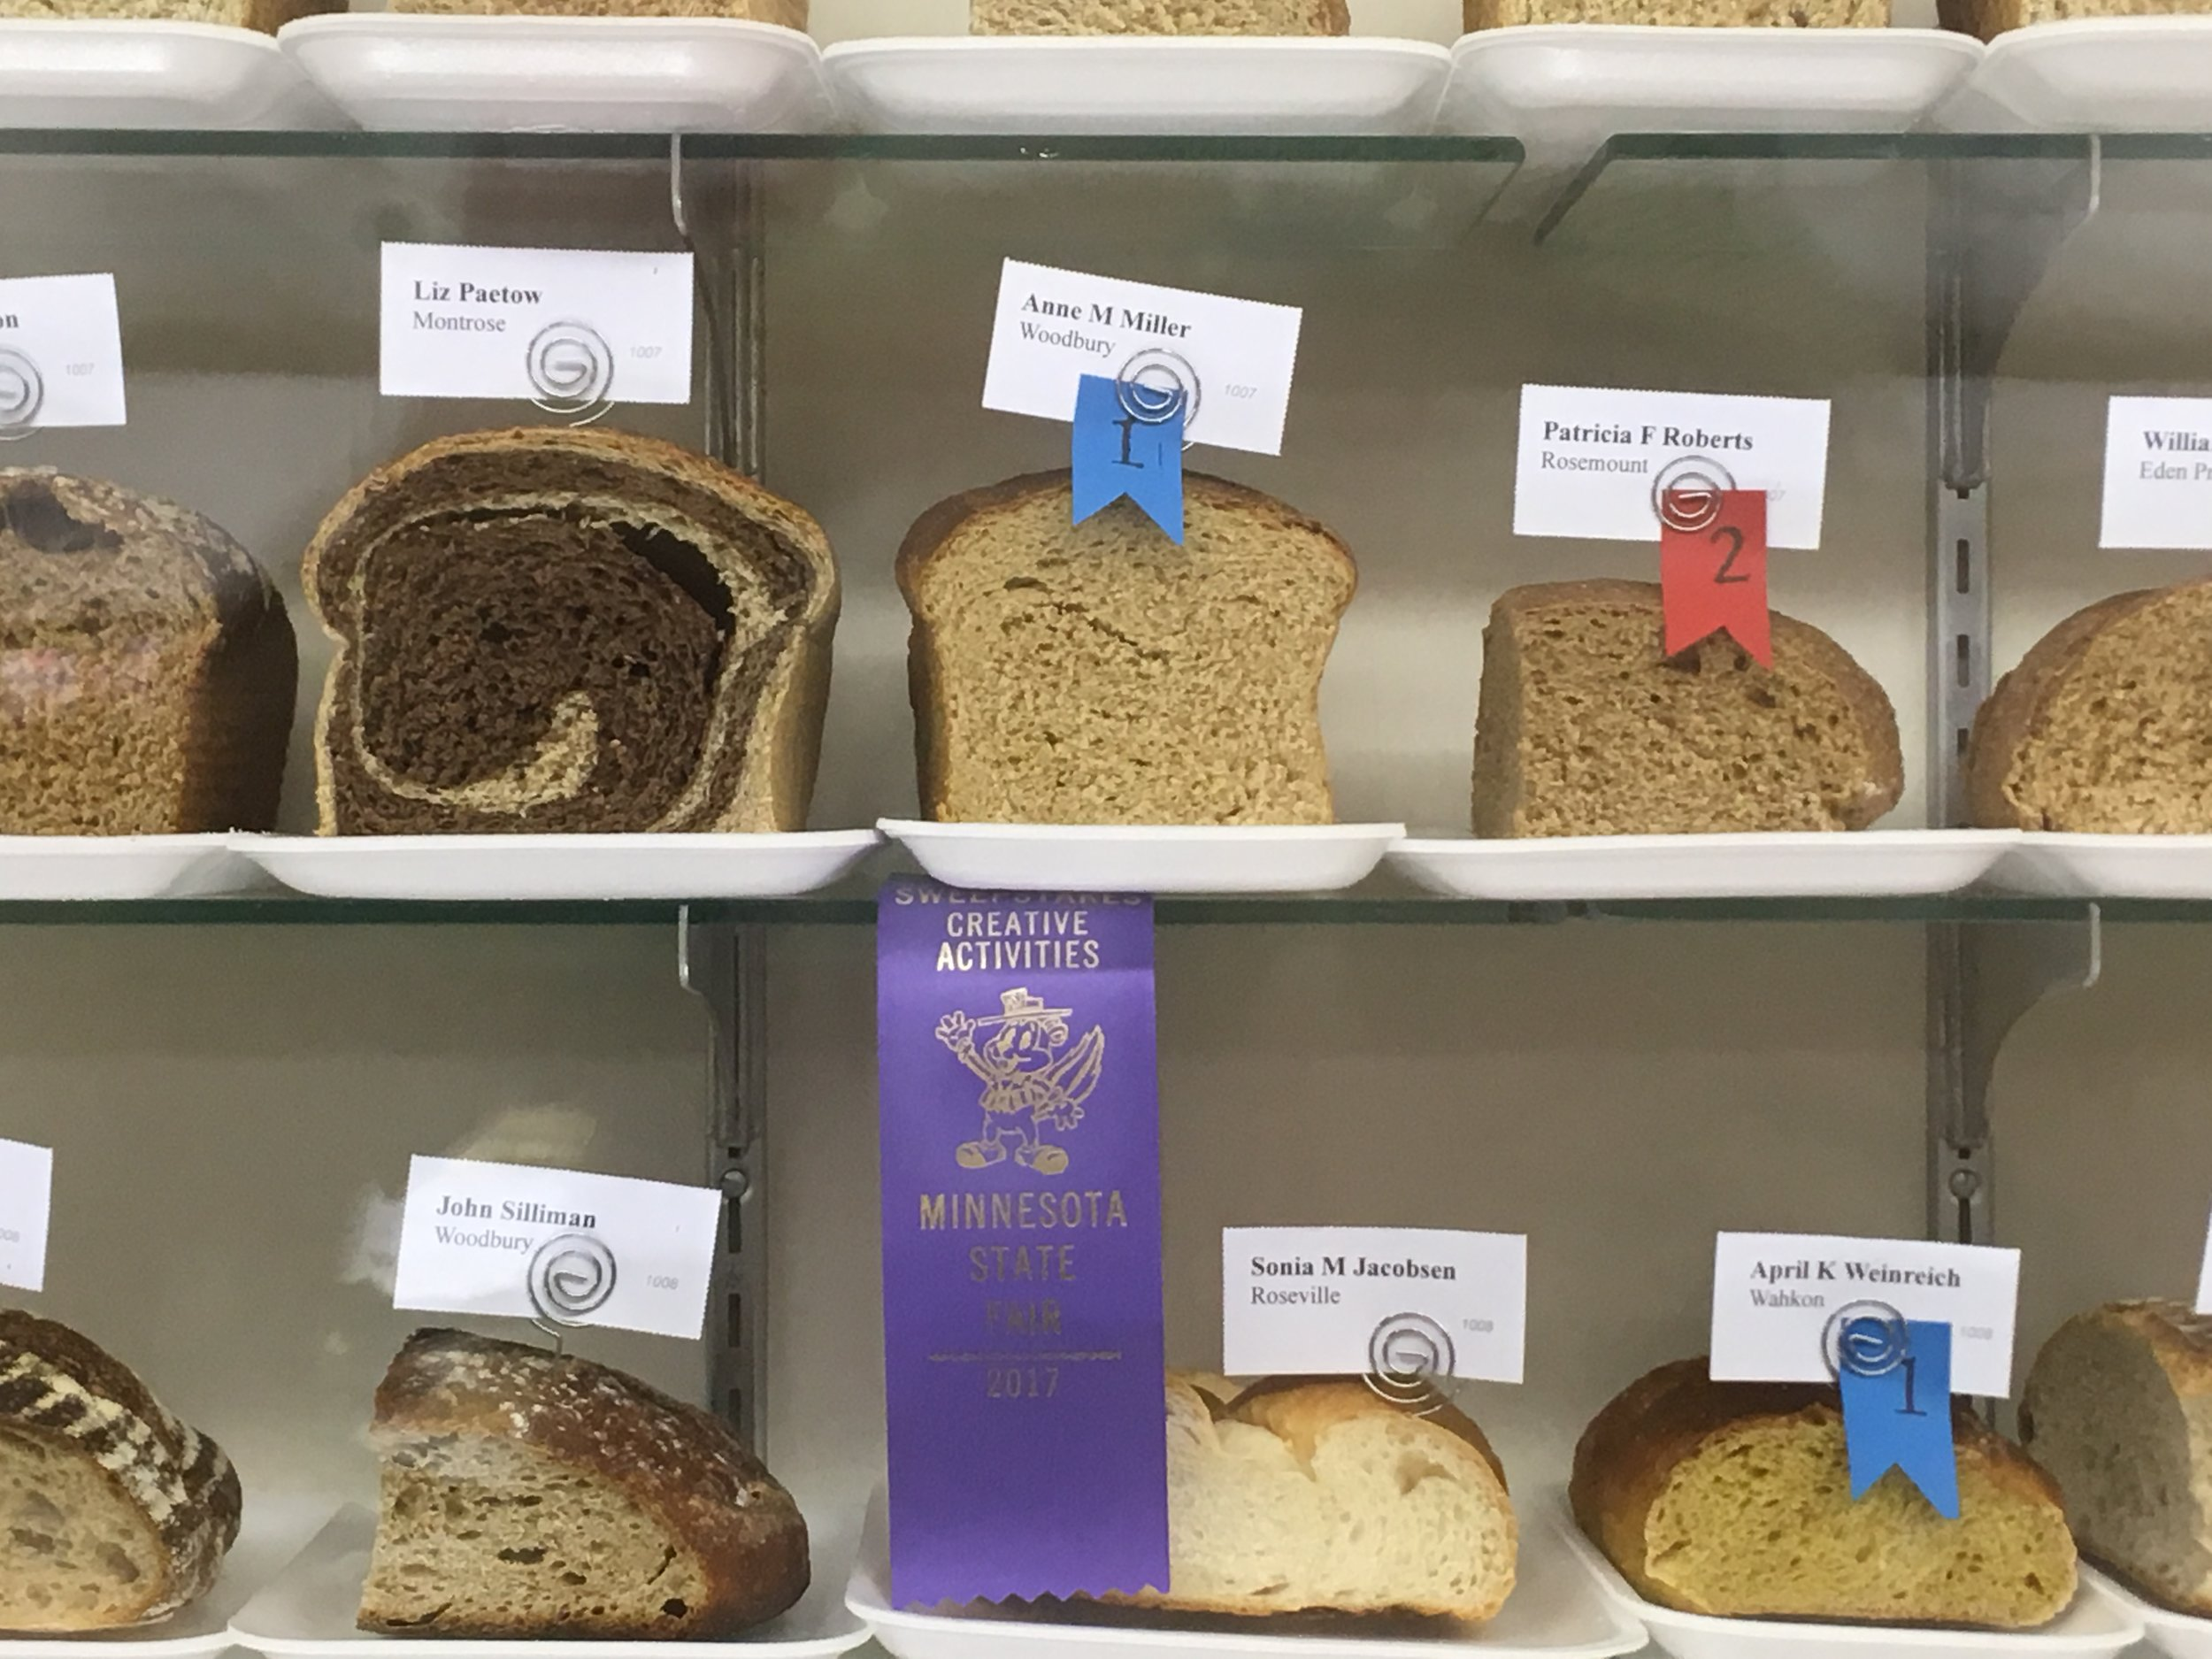 In the extremely competitive (no joke!) world of food competitions, our friend and bookkeeper, Anne Miller won 1st prize in her category! Congrats Anne!!